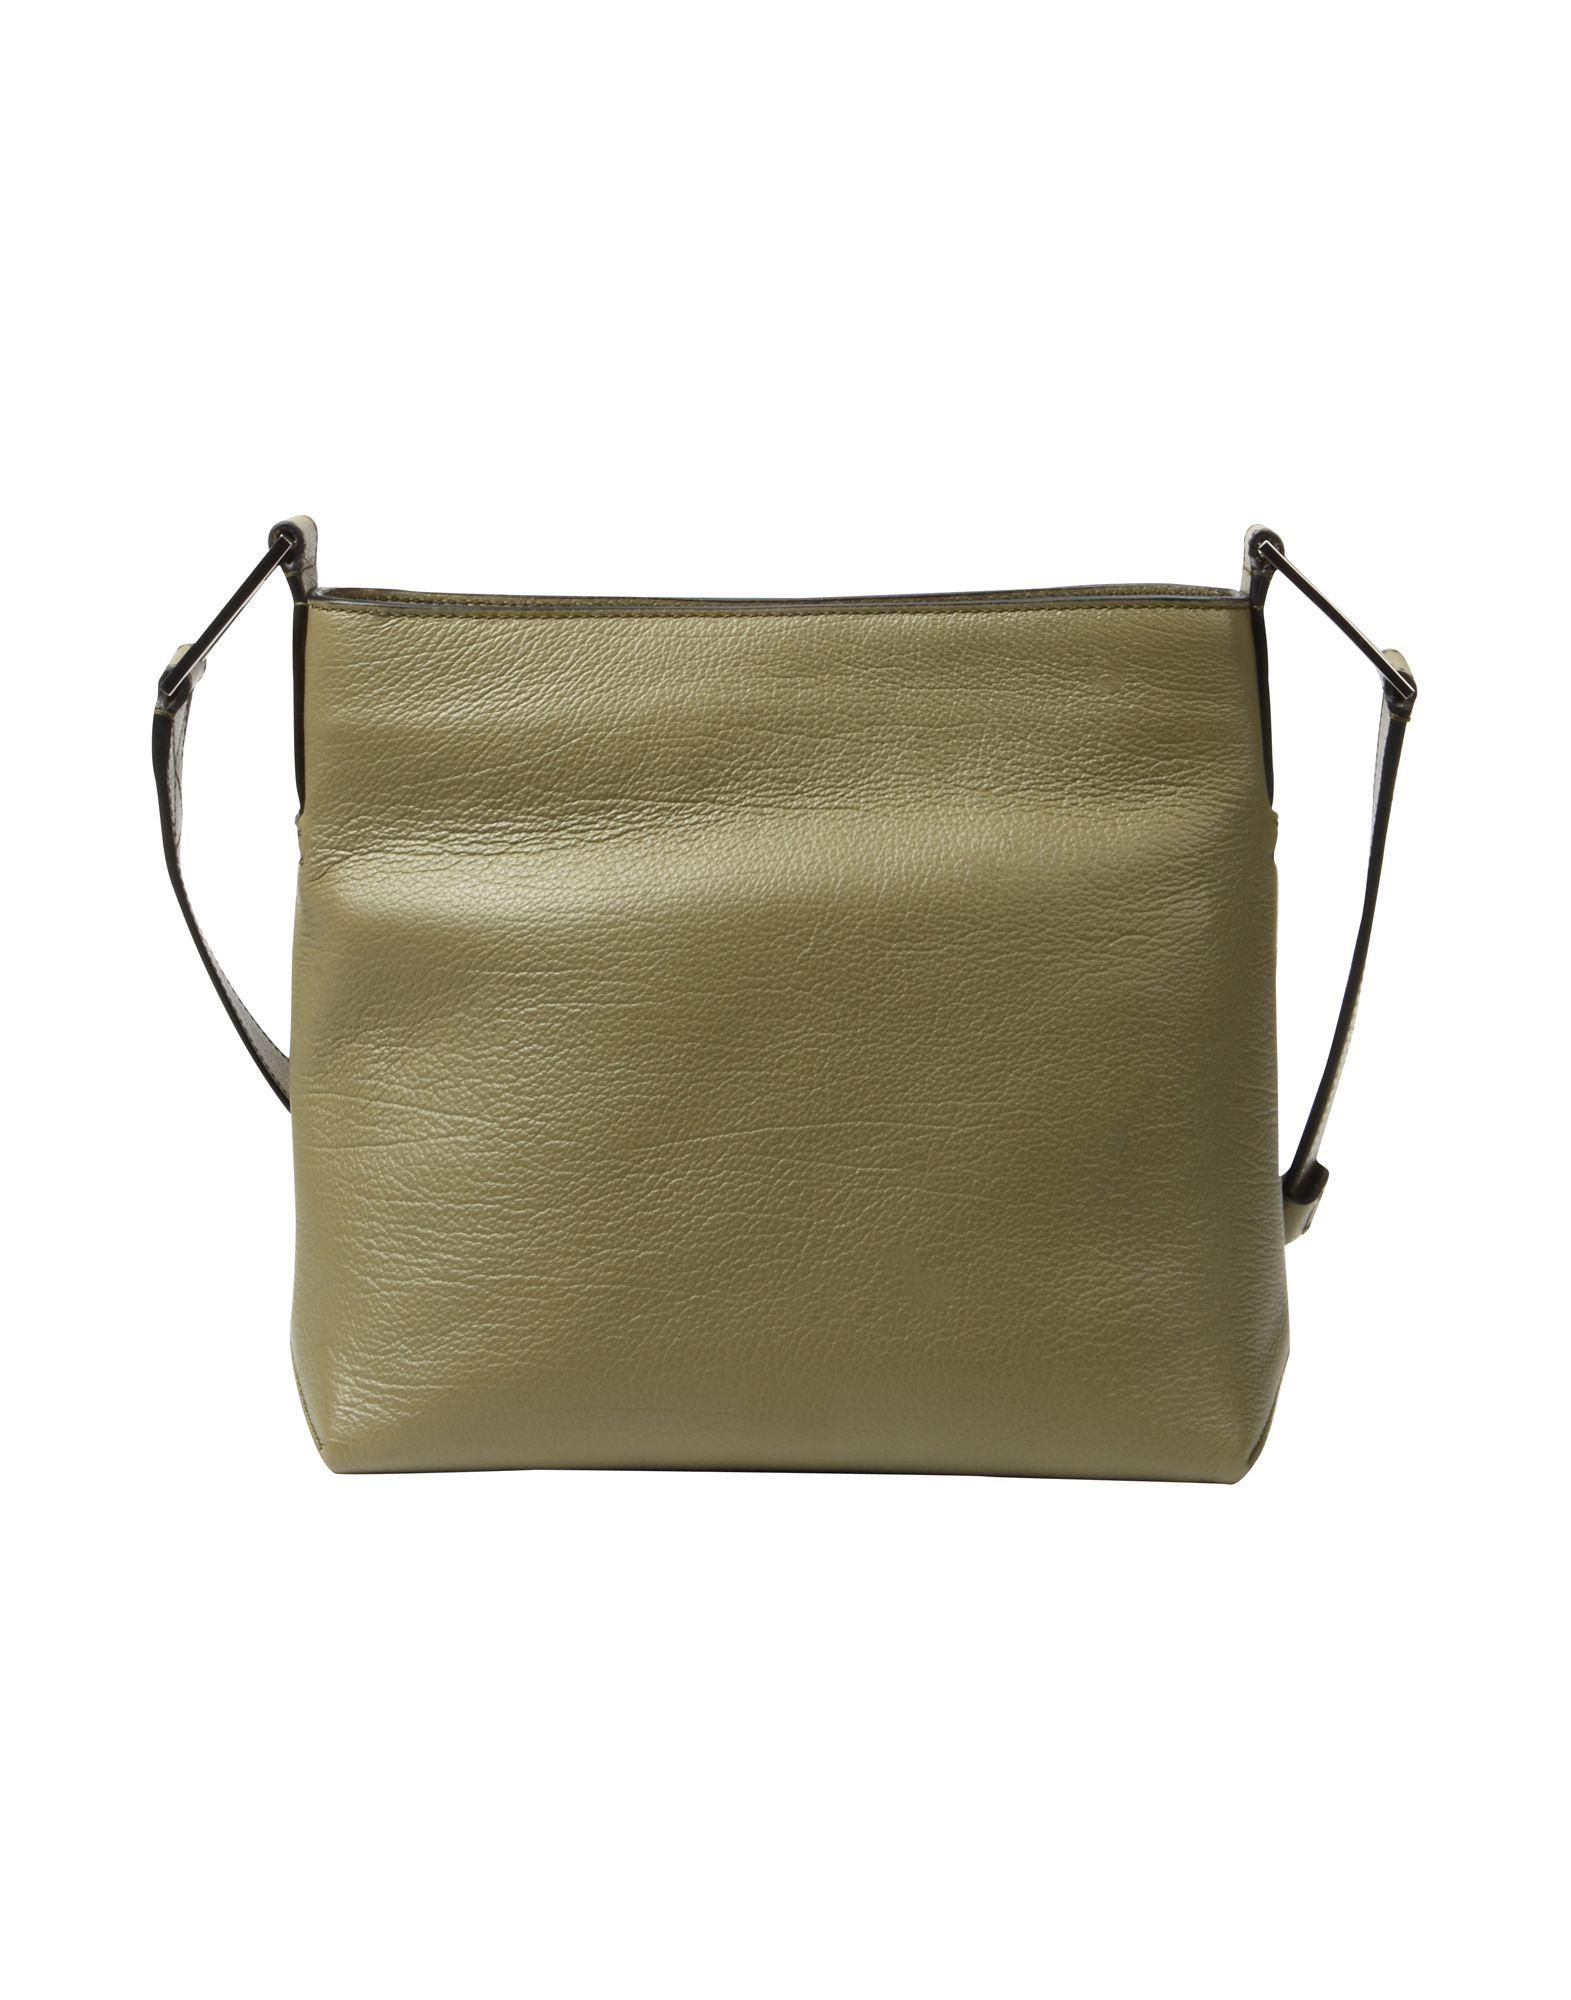 Lancel Leather Cross-body Bag in Military Green (Green)